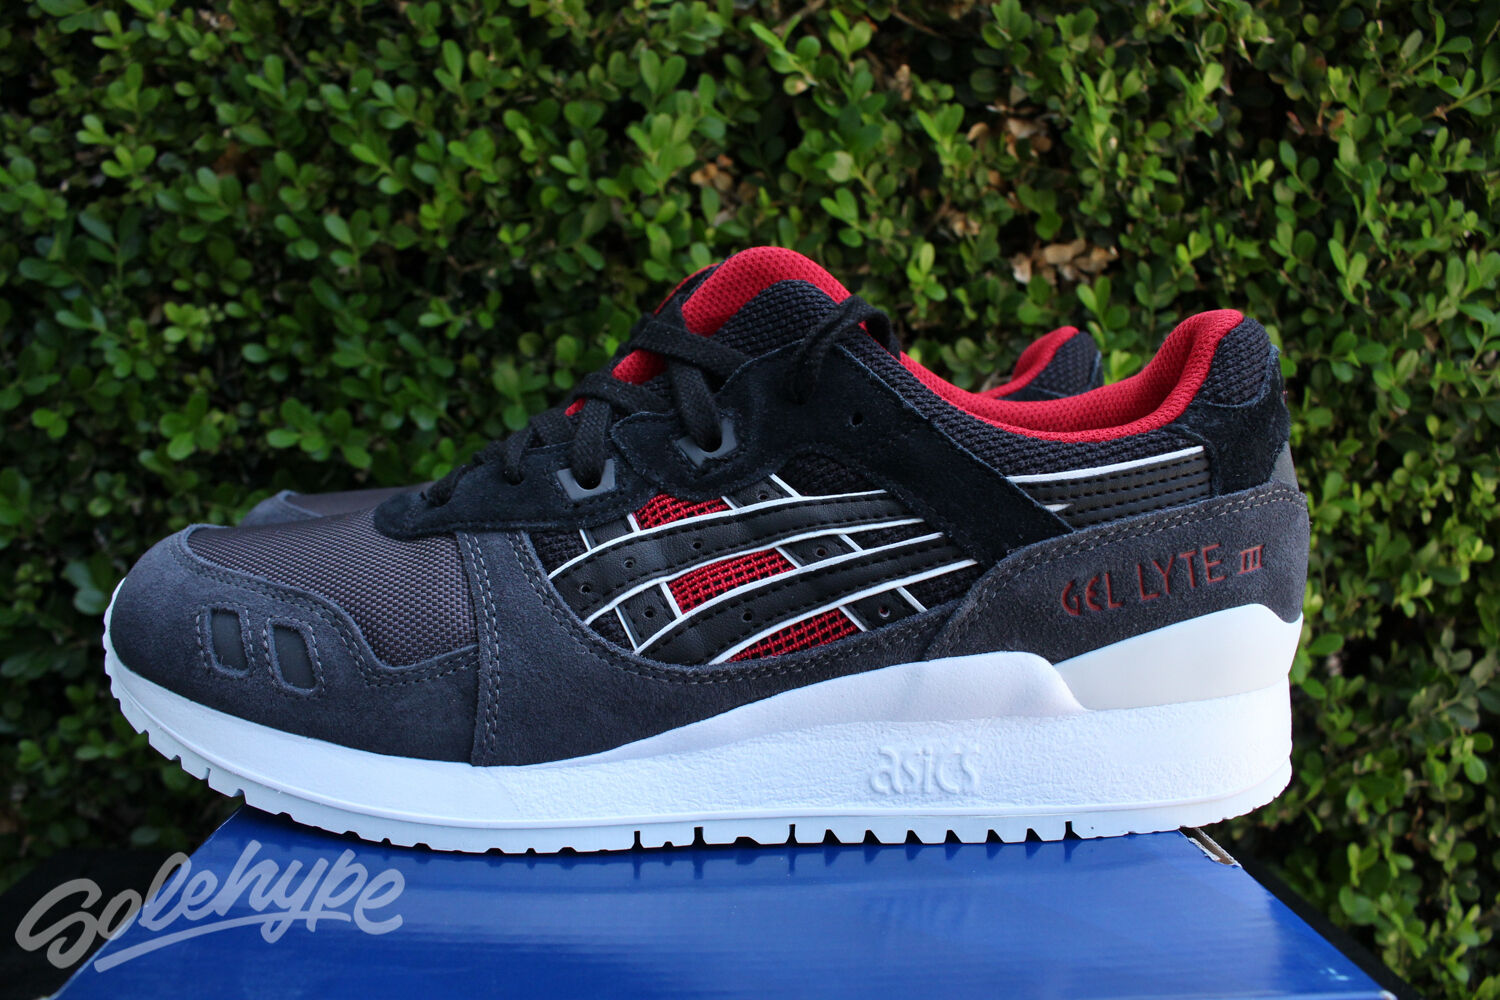 ASICS GEL LYTE III 3 SZ BLACK RED GREY WHITE H6X2L 9090